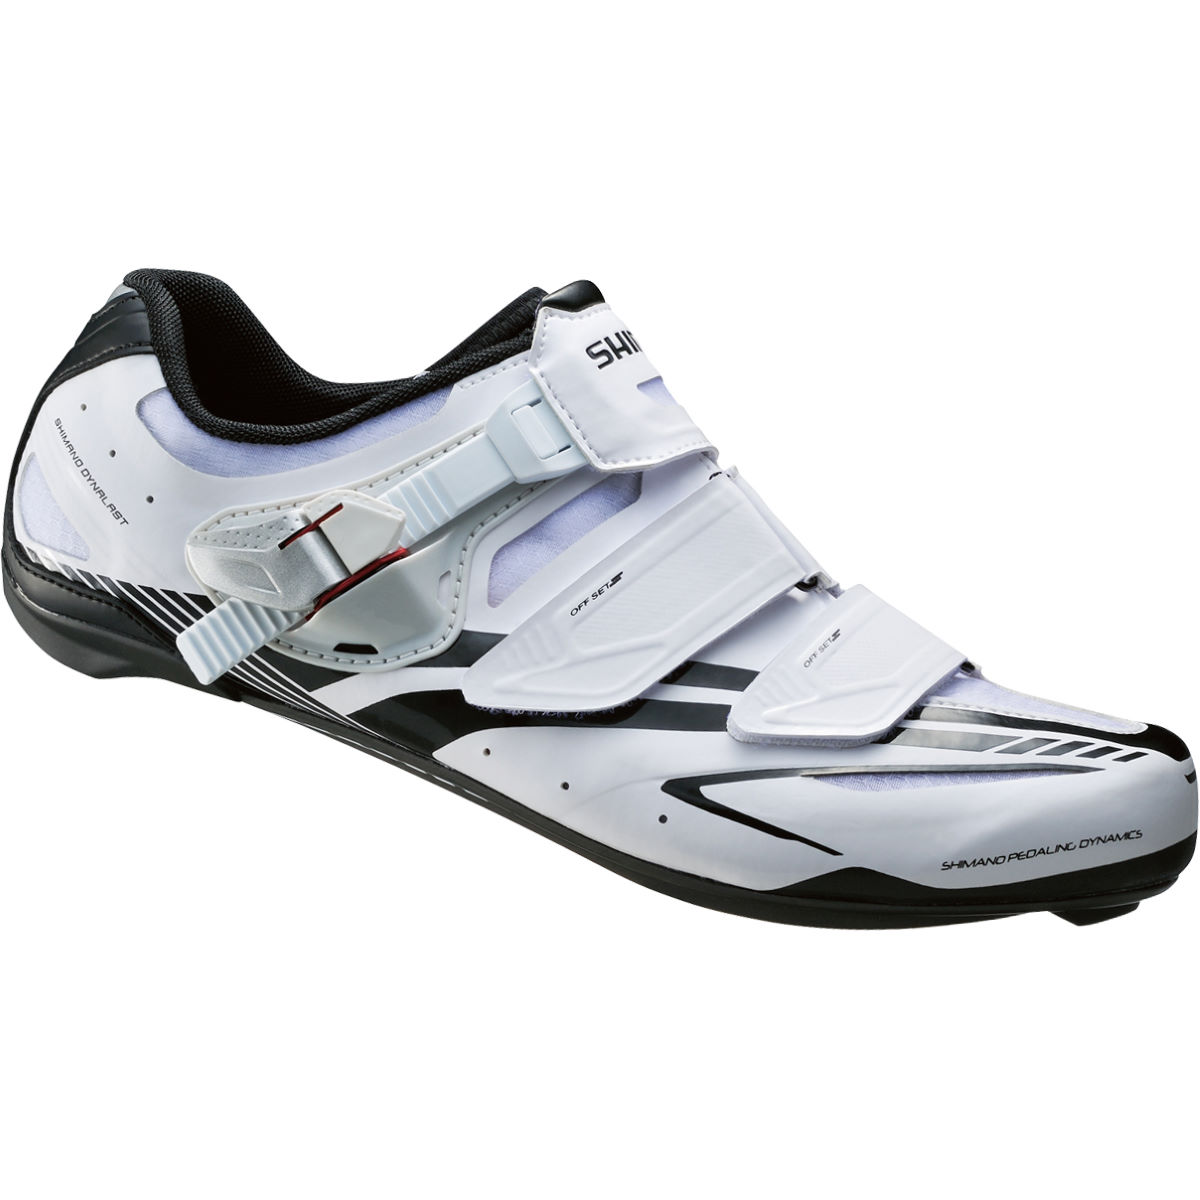 Shimano R170 SPD-SL Road Cycling Shoes